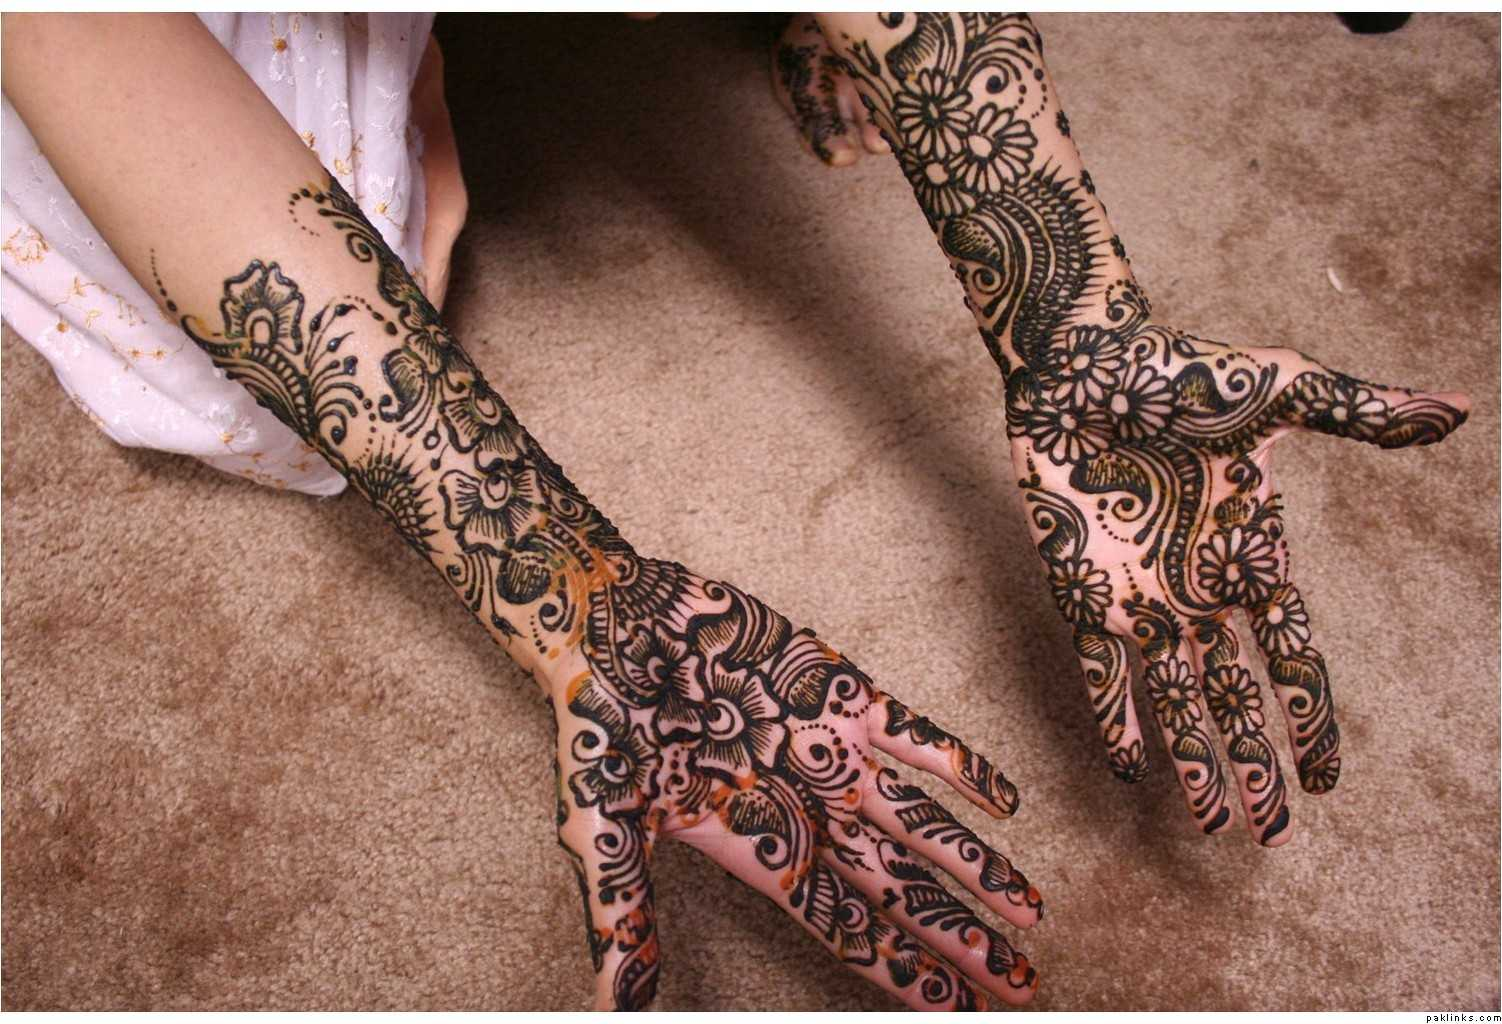 Bridal Mehndi 2013 - Latest bridal mehndi designs 2013 pictures